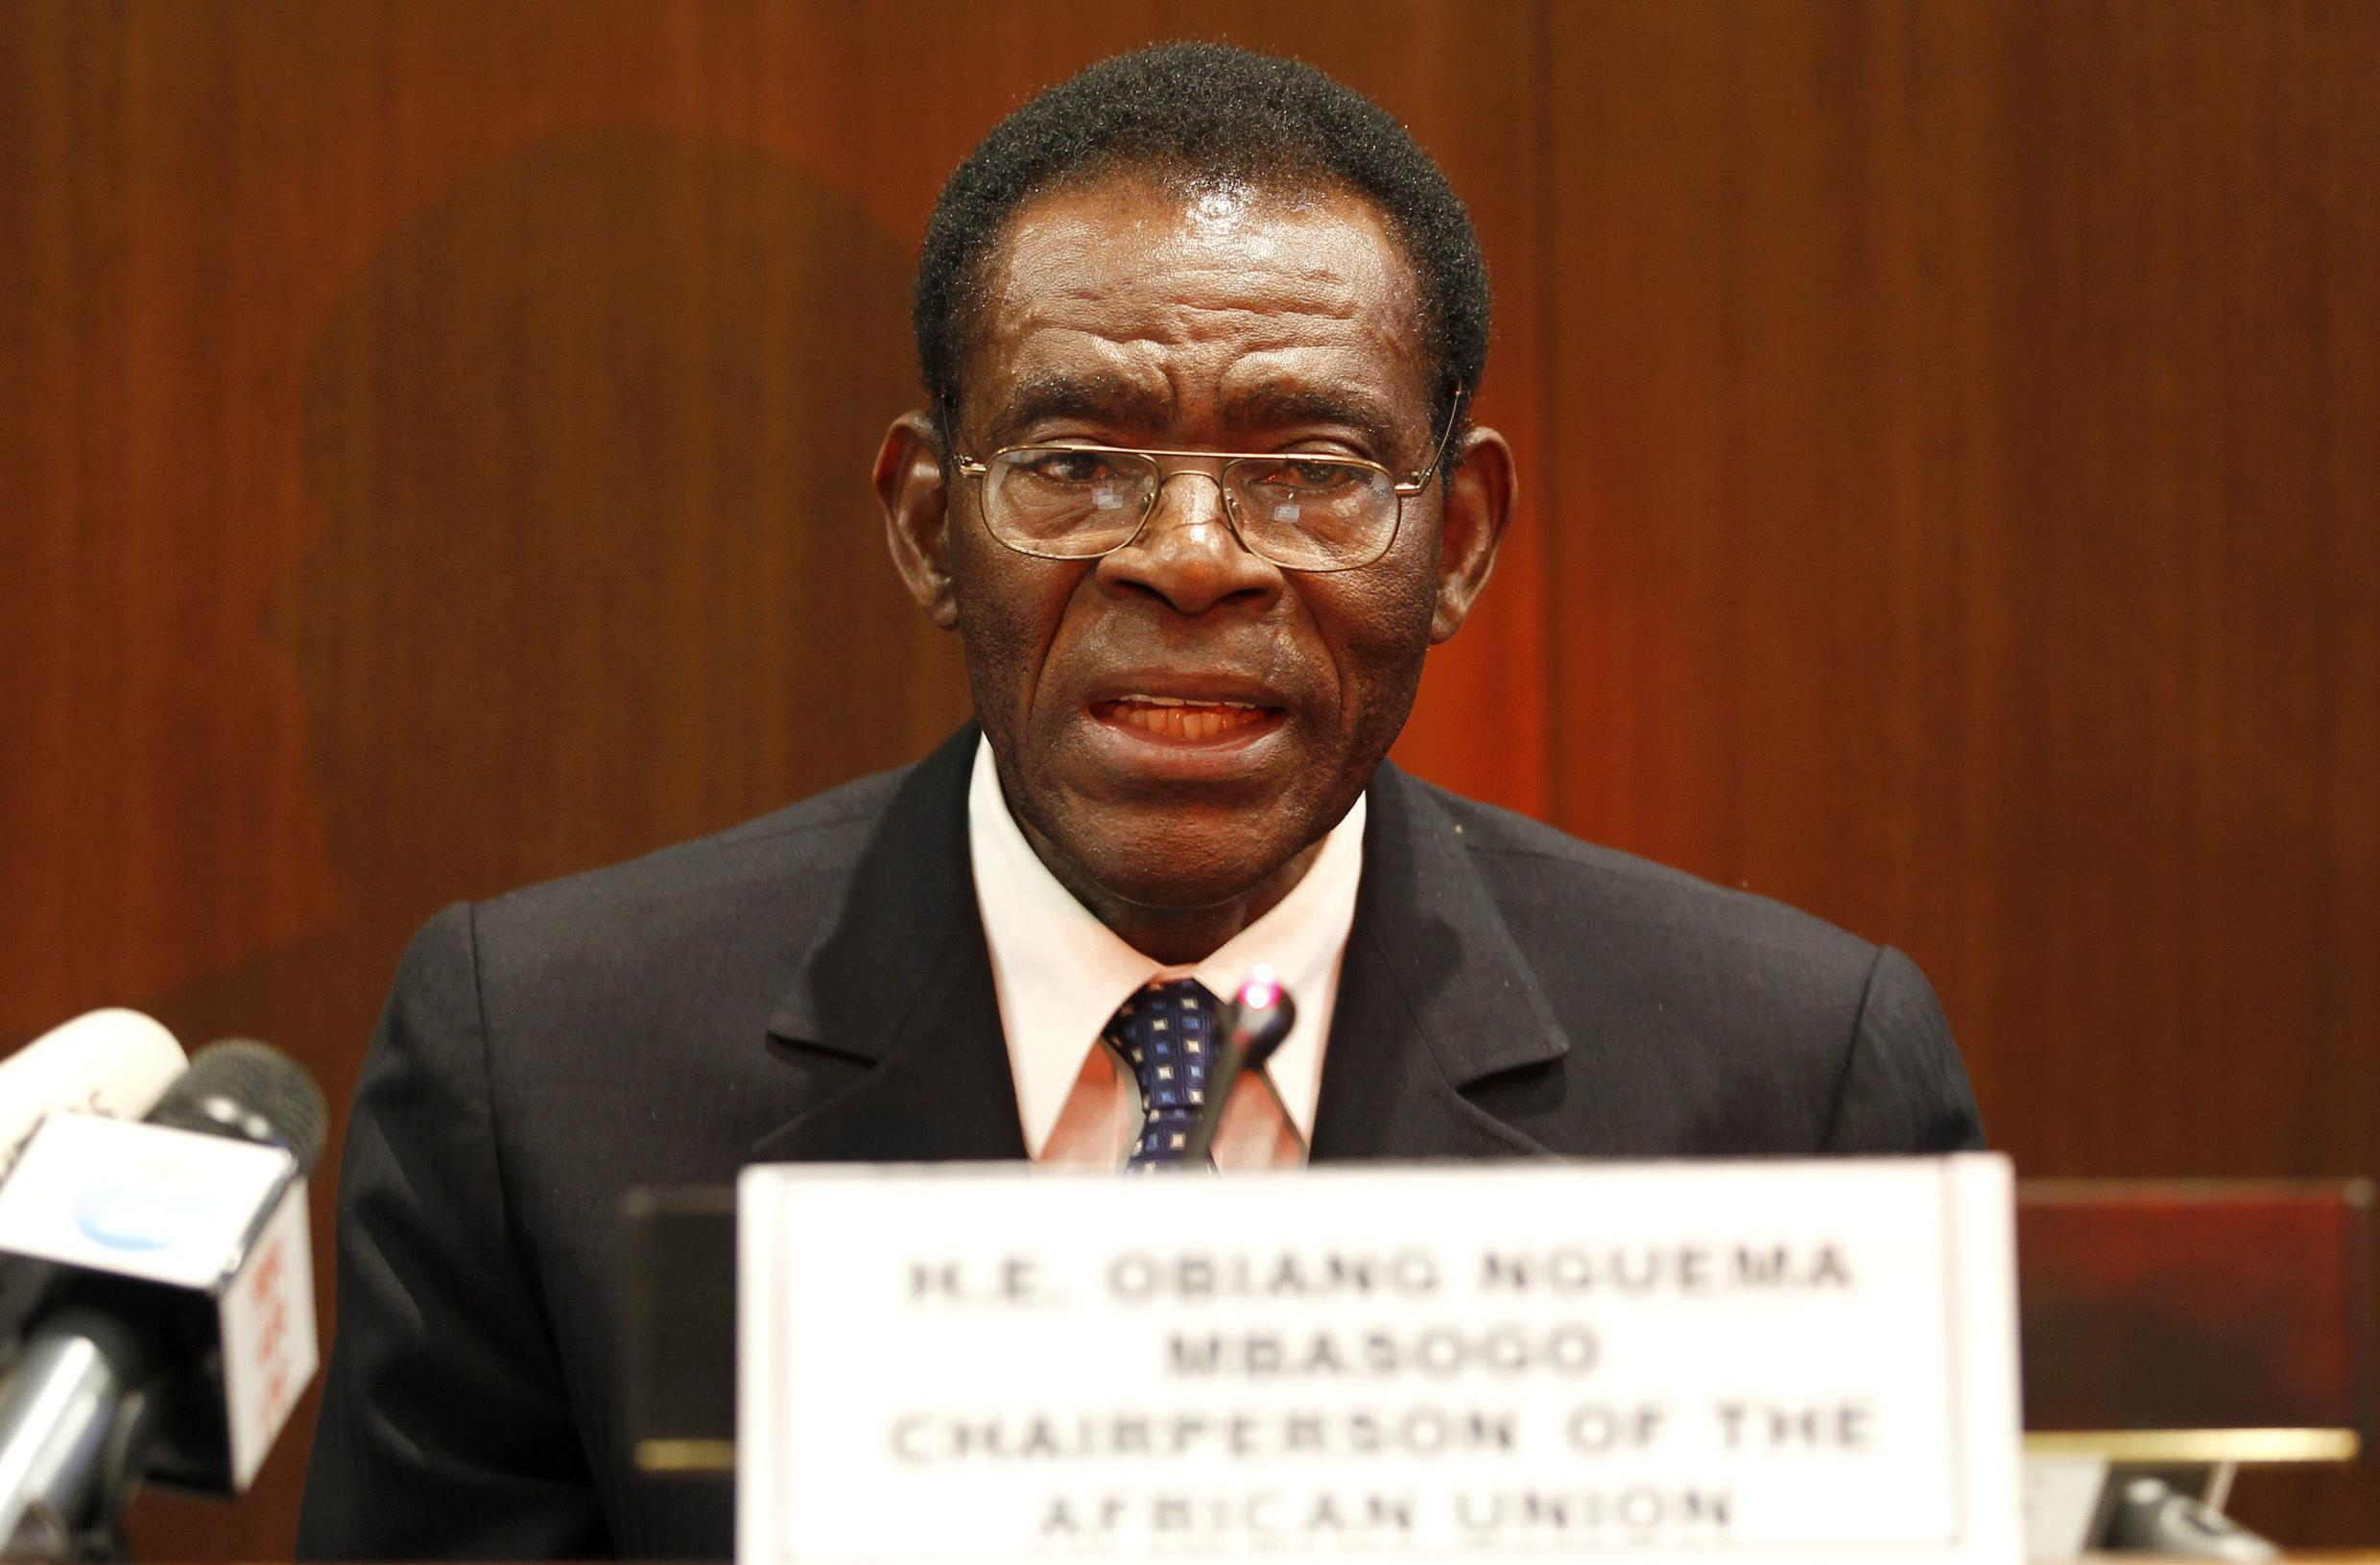 Teodoro Obiang Nguema , Equatorial Guinea's President and new African Union Chairman, at the end of the summit in Addis Ababa